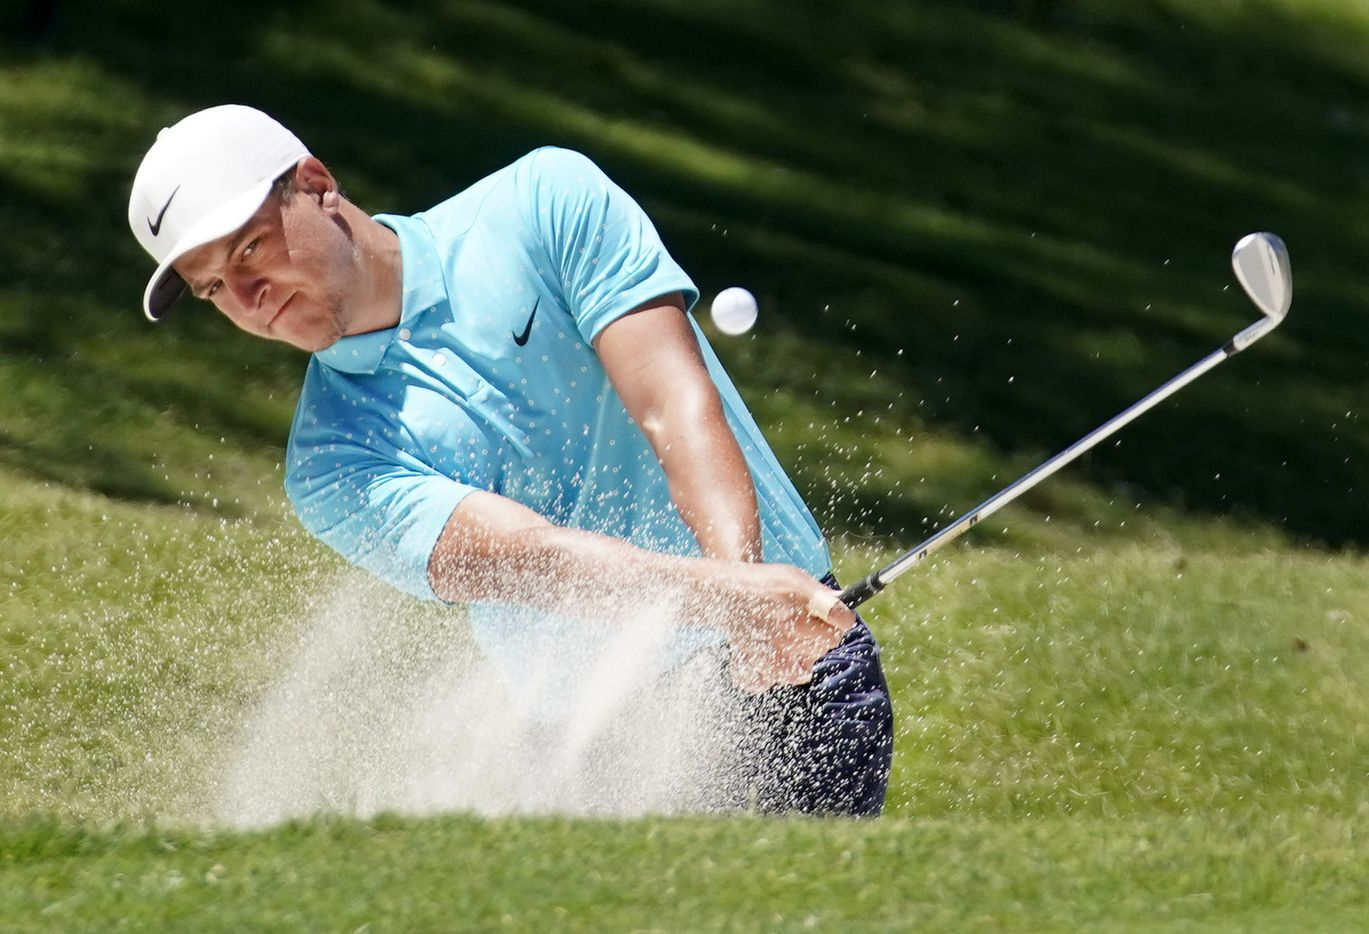 PGA Tour golfer Cameron Champ hits out of the No. 18 green side bunker during the opening round of the Charles Schwab Challenge at the Colonial Country Club in Fort Worth, Thursday, June 11, 2020.  The Challenge is the first tour event since the COVID-19 pandemic began. (Tom Fox/The Dallas Morning News)